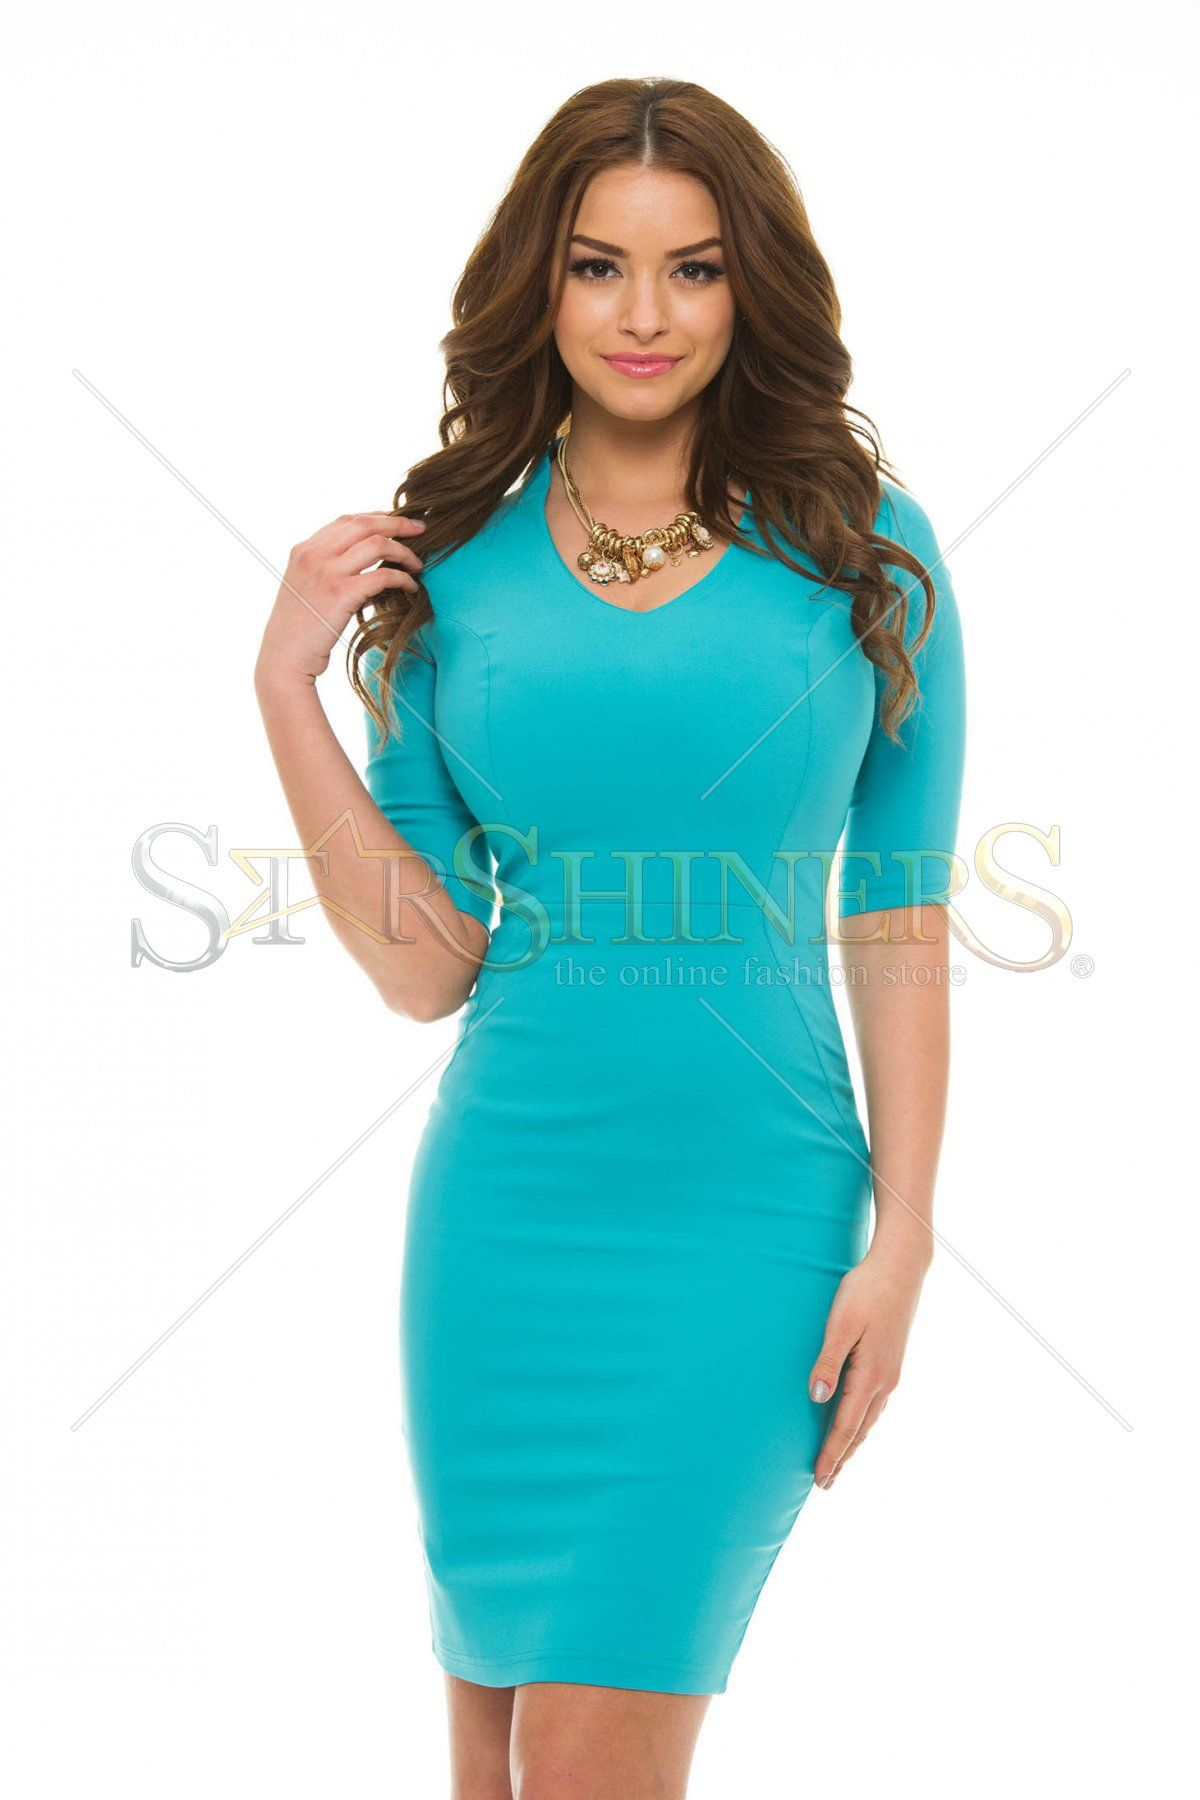 Artista Casual Chic Turquoise Dress Short Sleeves Outfits Vestidos Dresses Colourful Outfits [ 1800 x 1200 Pixel ]